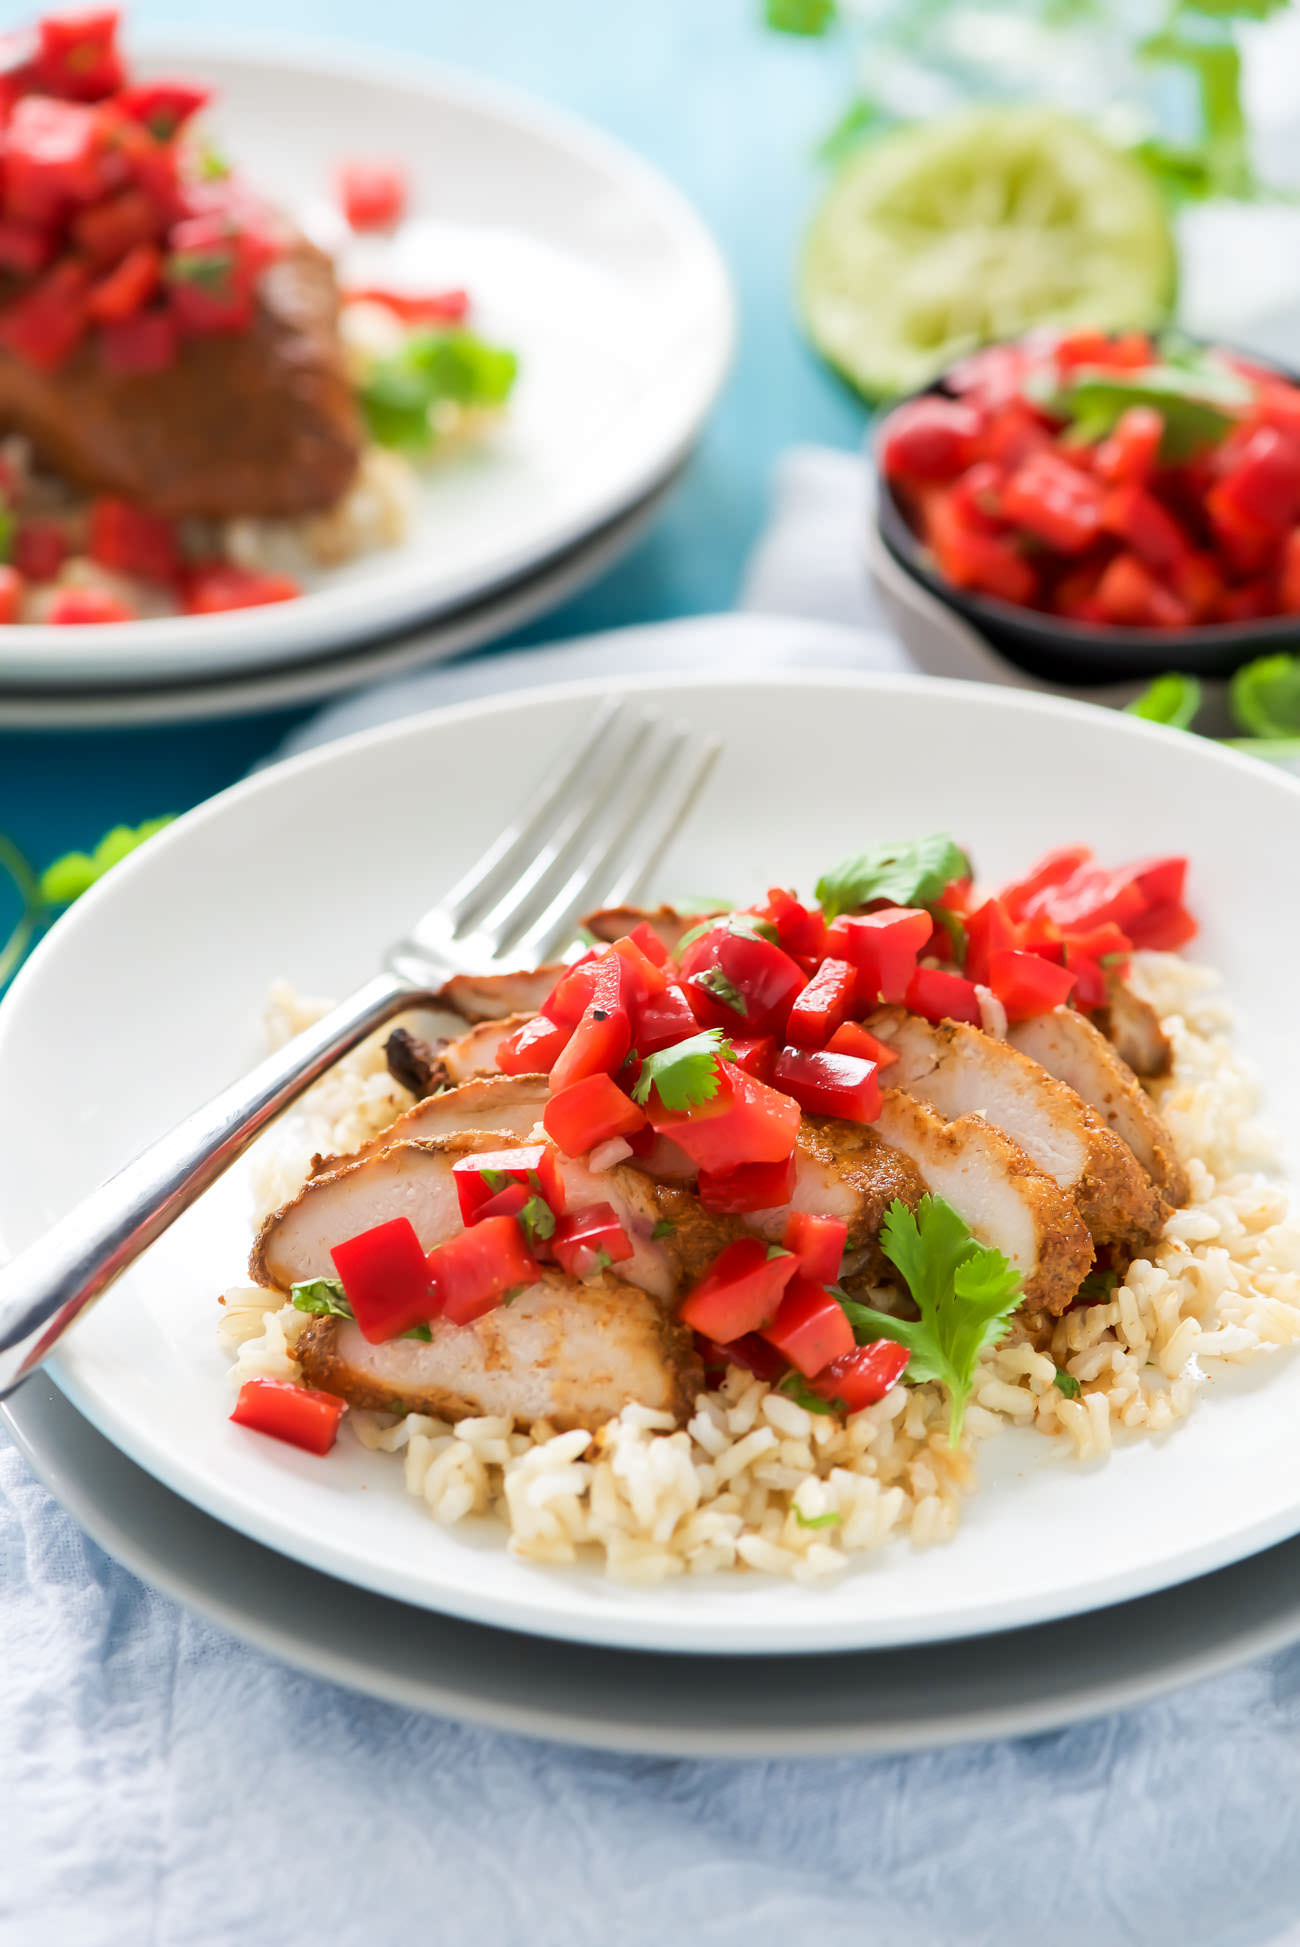 Tequila Honey Lime Chicken - juicy chicken marinated in a smoky chipotle, a touch of honey and chili powder then finished with a super quick and fresh red pepper salsa!